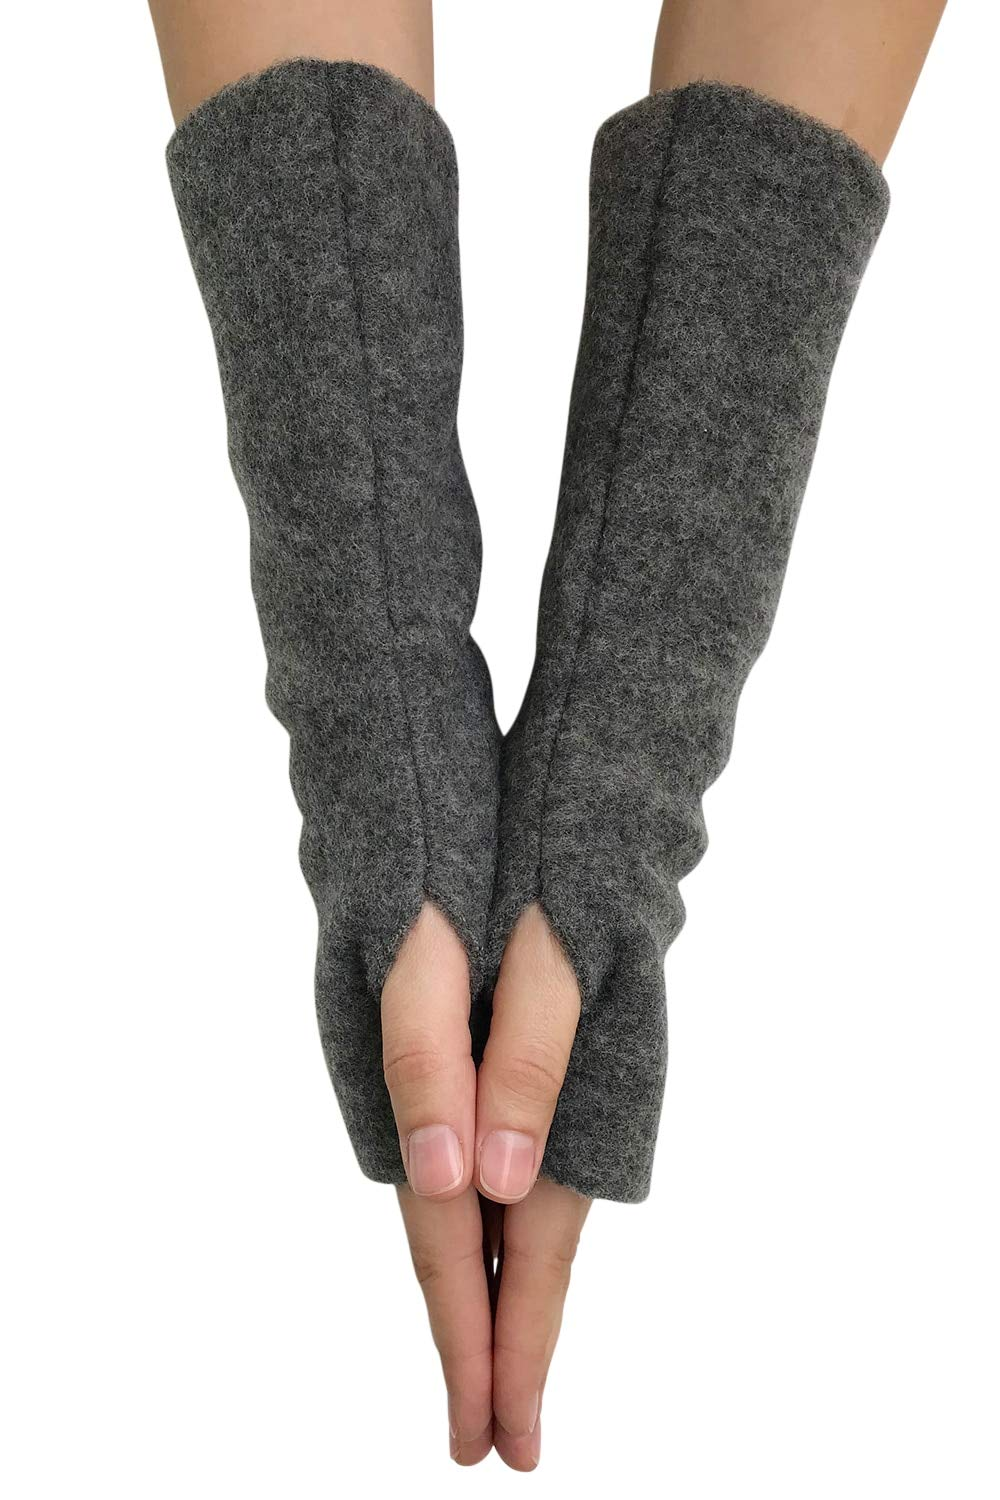 Women's Arm Warmer Sleeves - Fingerless Gloves with Thumb Holes, Pure Merino Wool Fleece (Grey Melange) by EcoAble Apparel (Image #4)